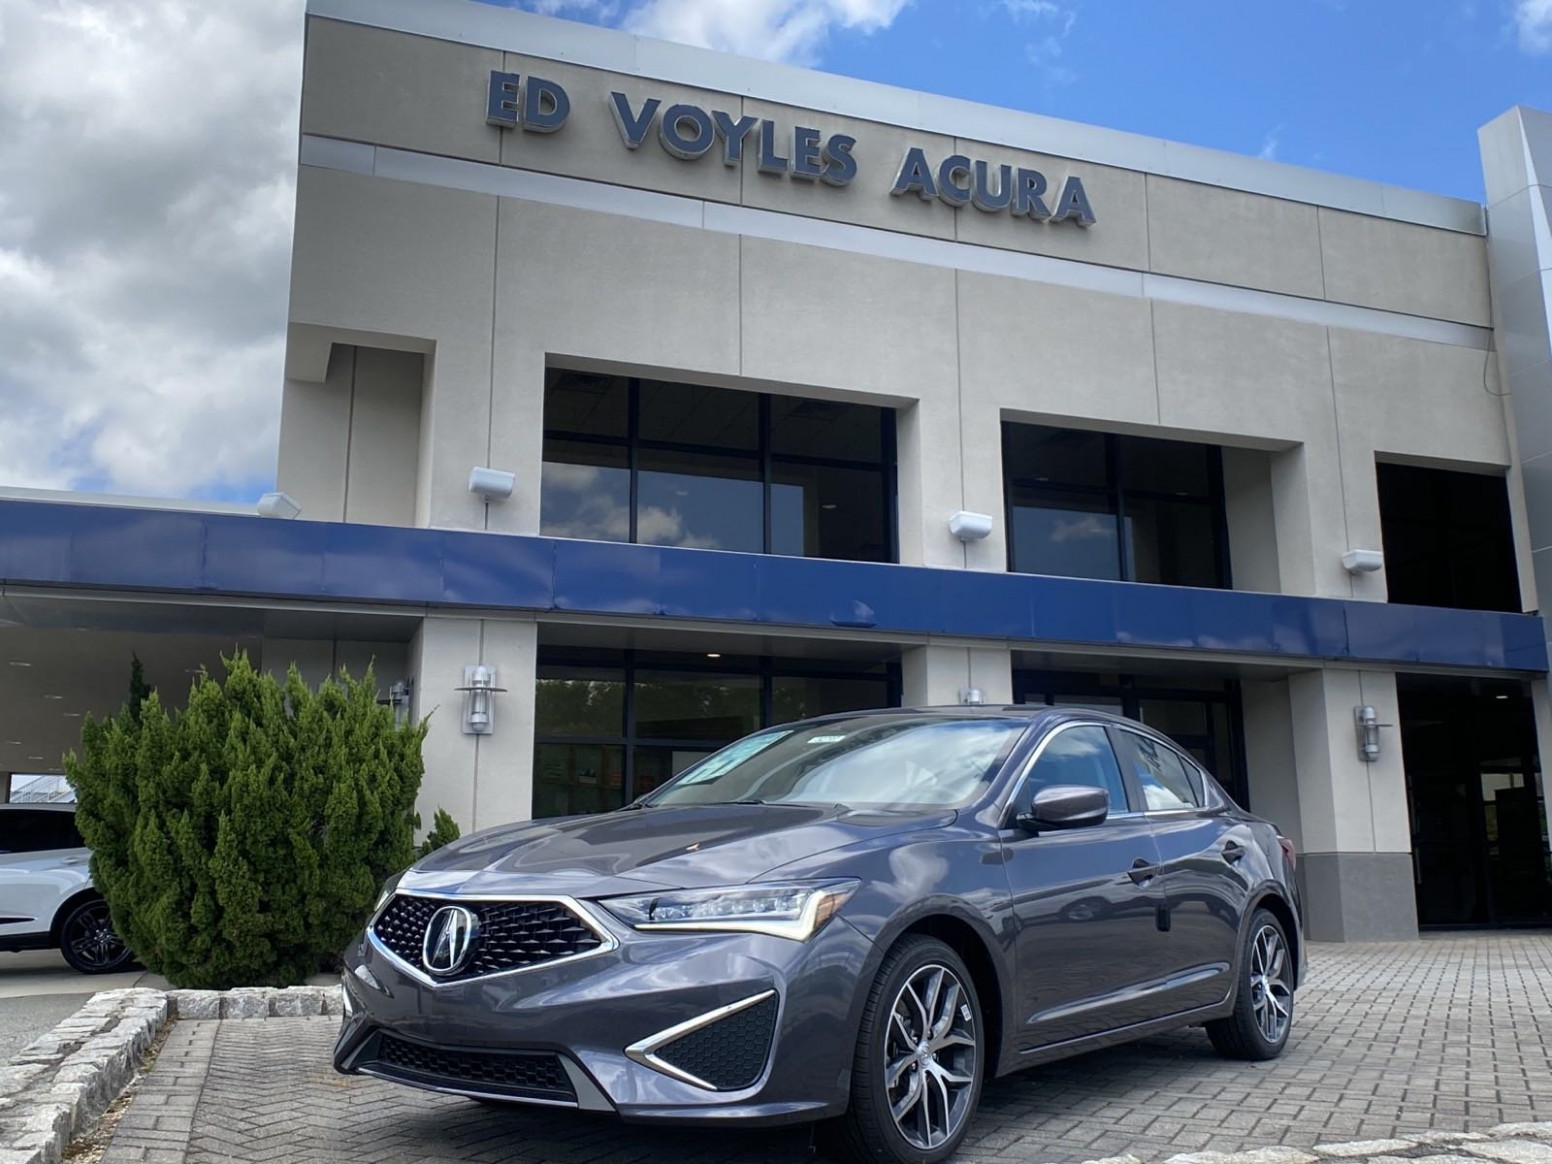 New 8 Acura ILX with Premium Package   2020 Acura Ilx Premium Package